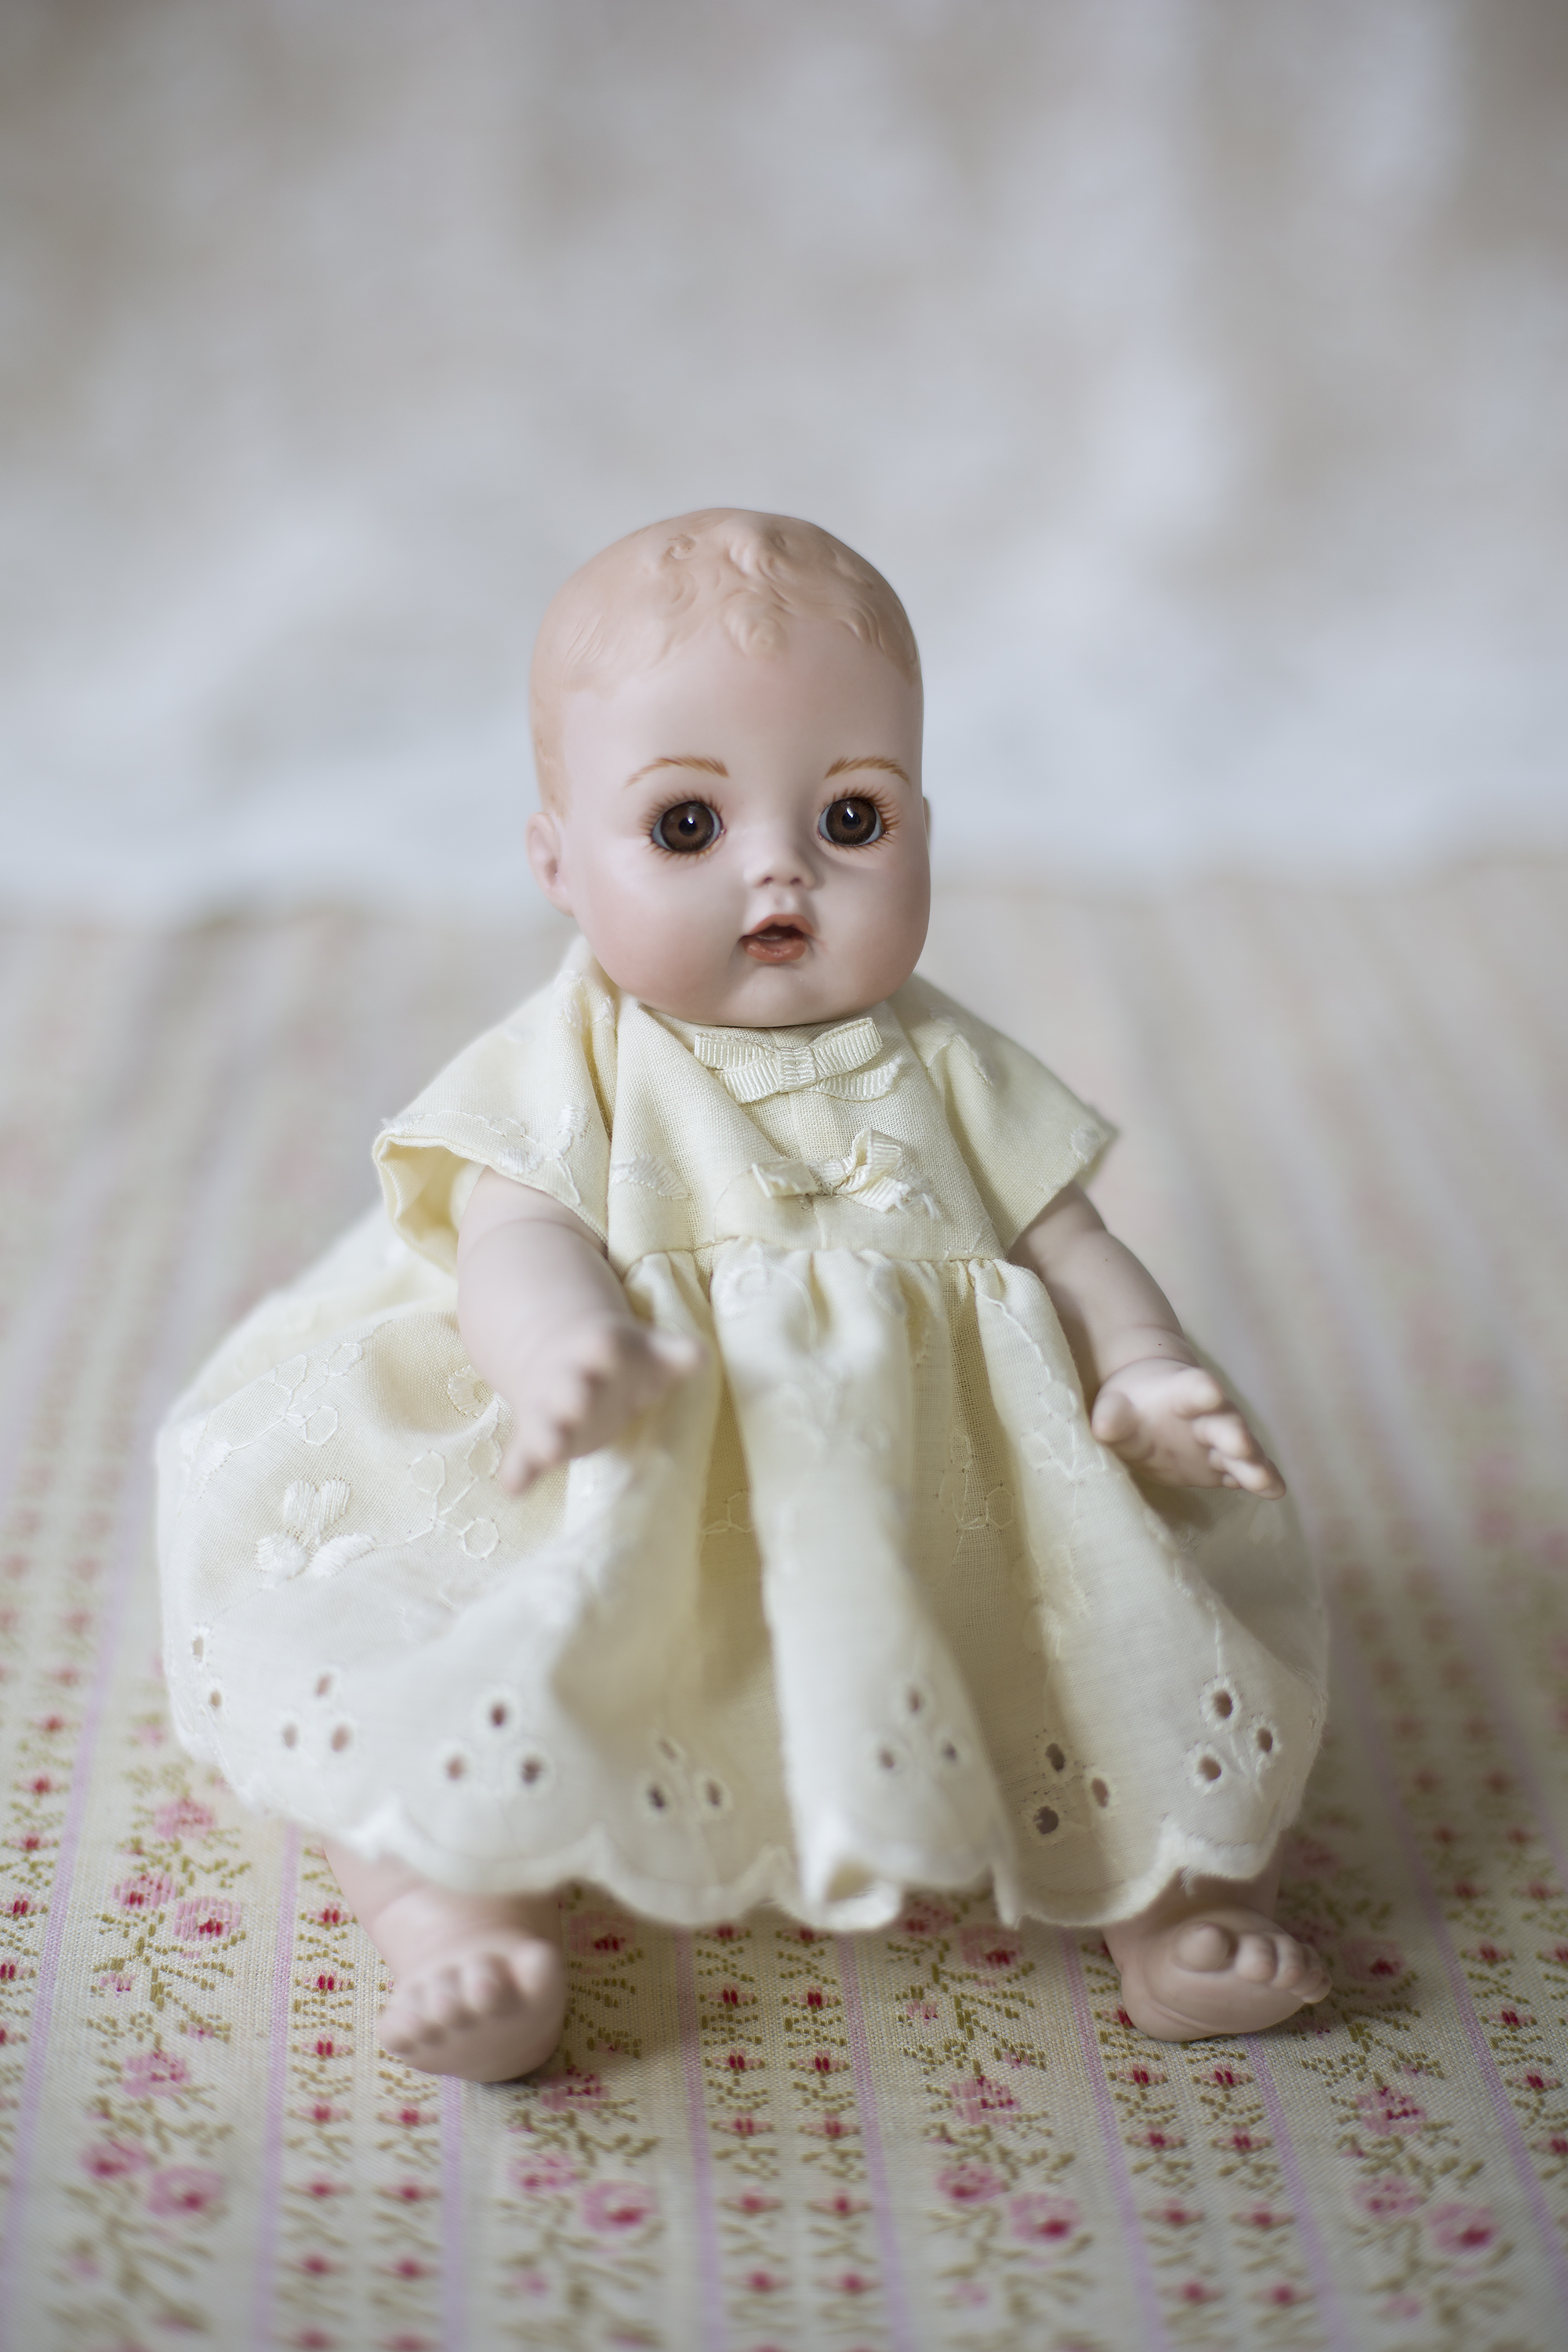 Porcelain doll, gift to Judith from Wilma Mans.